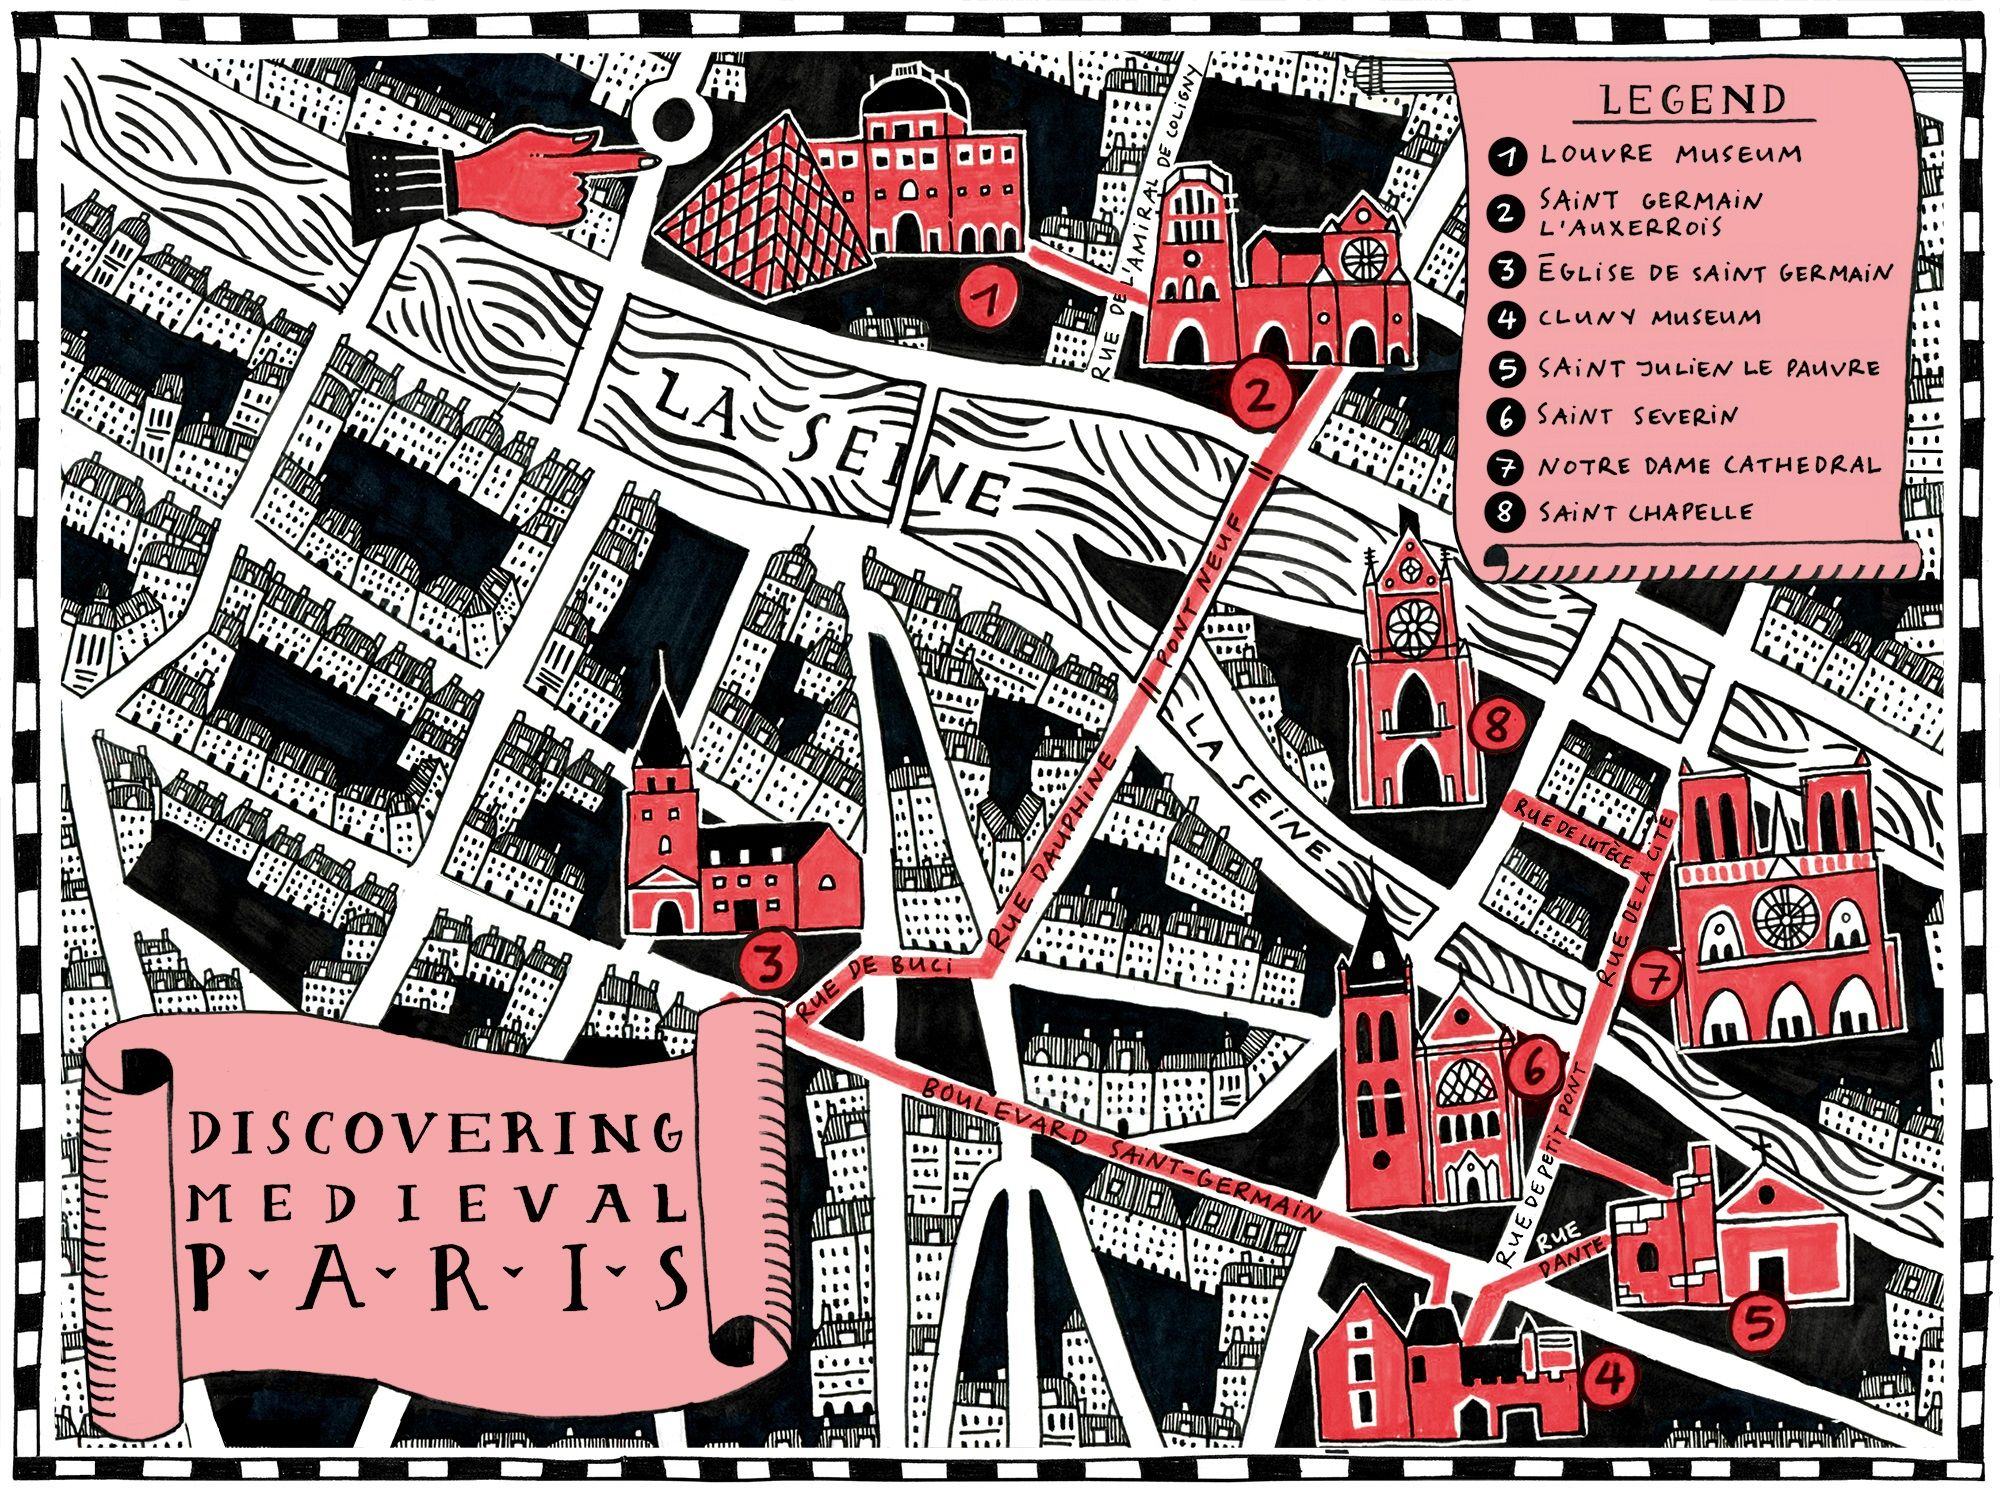 Discovering Medieval Paris Map #infographic